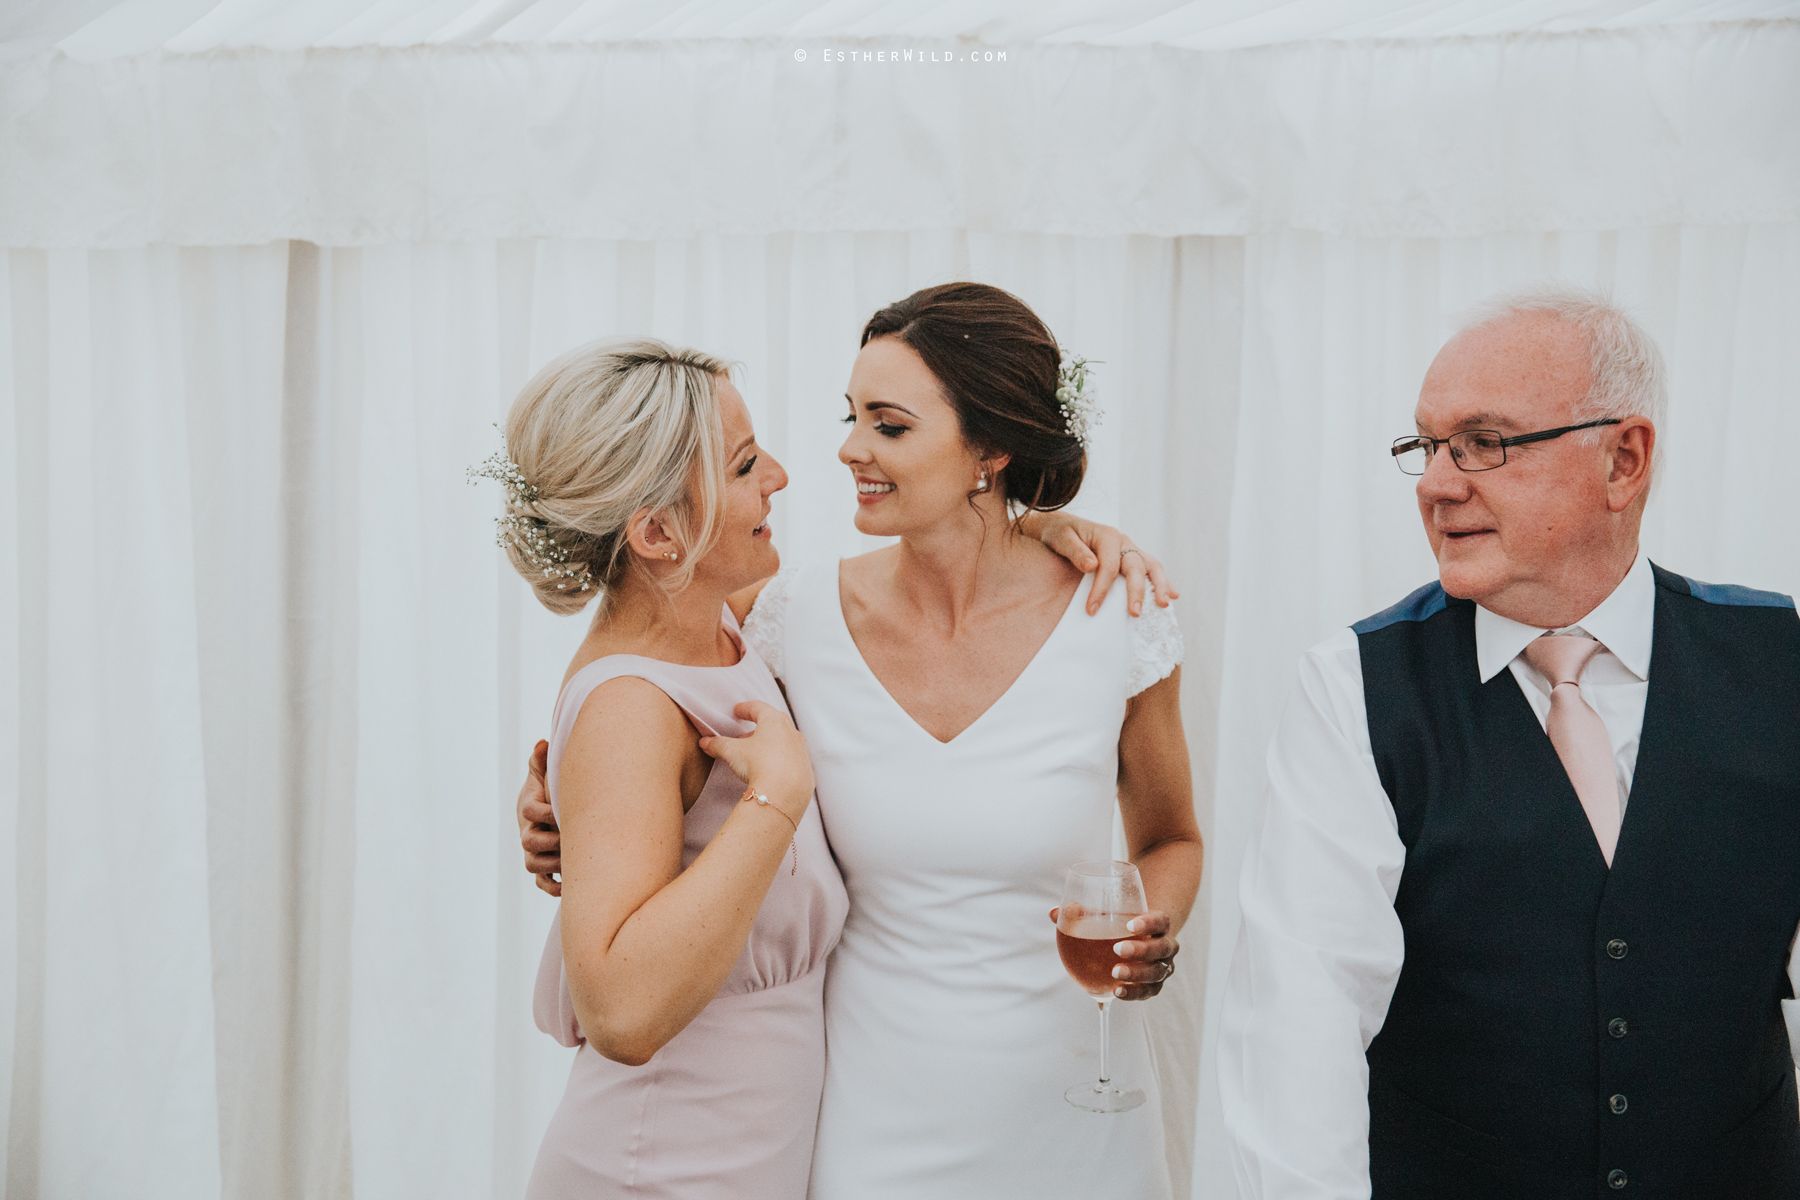 Wootton_Wedding_Copyright_Esther_Wild_Photographer_IMG_3053.jpg